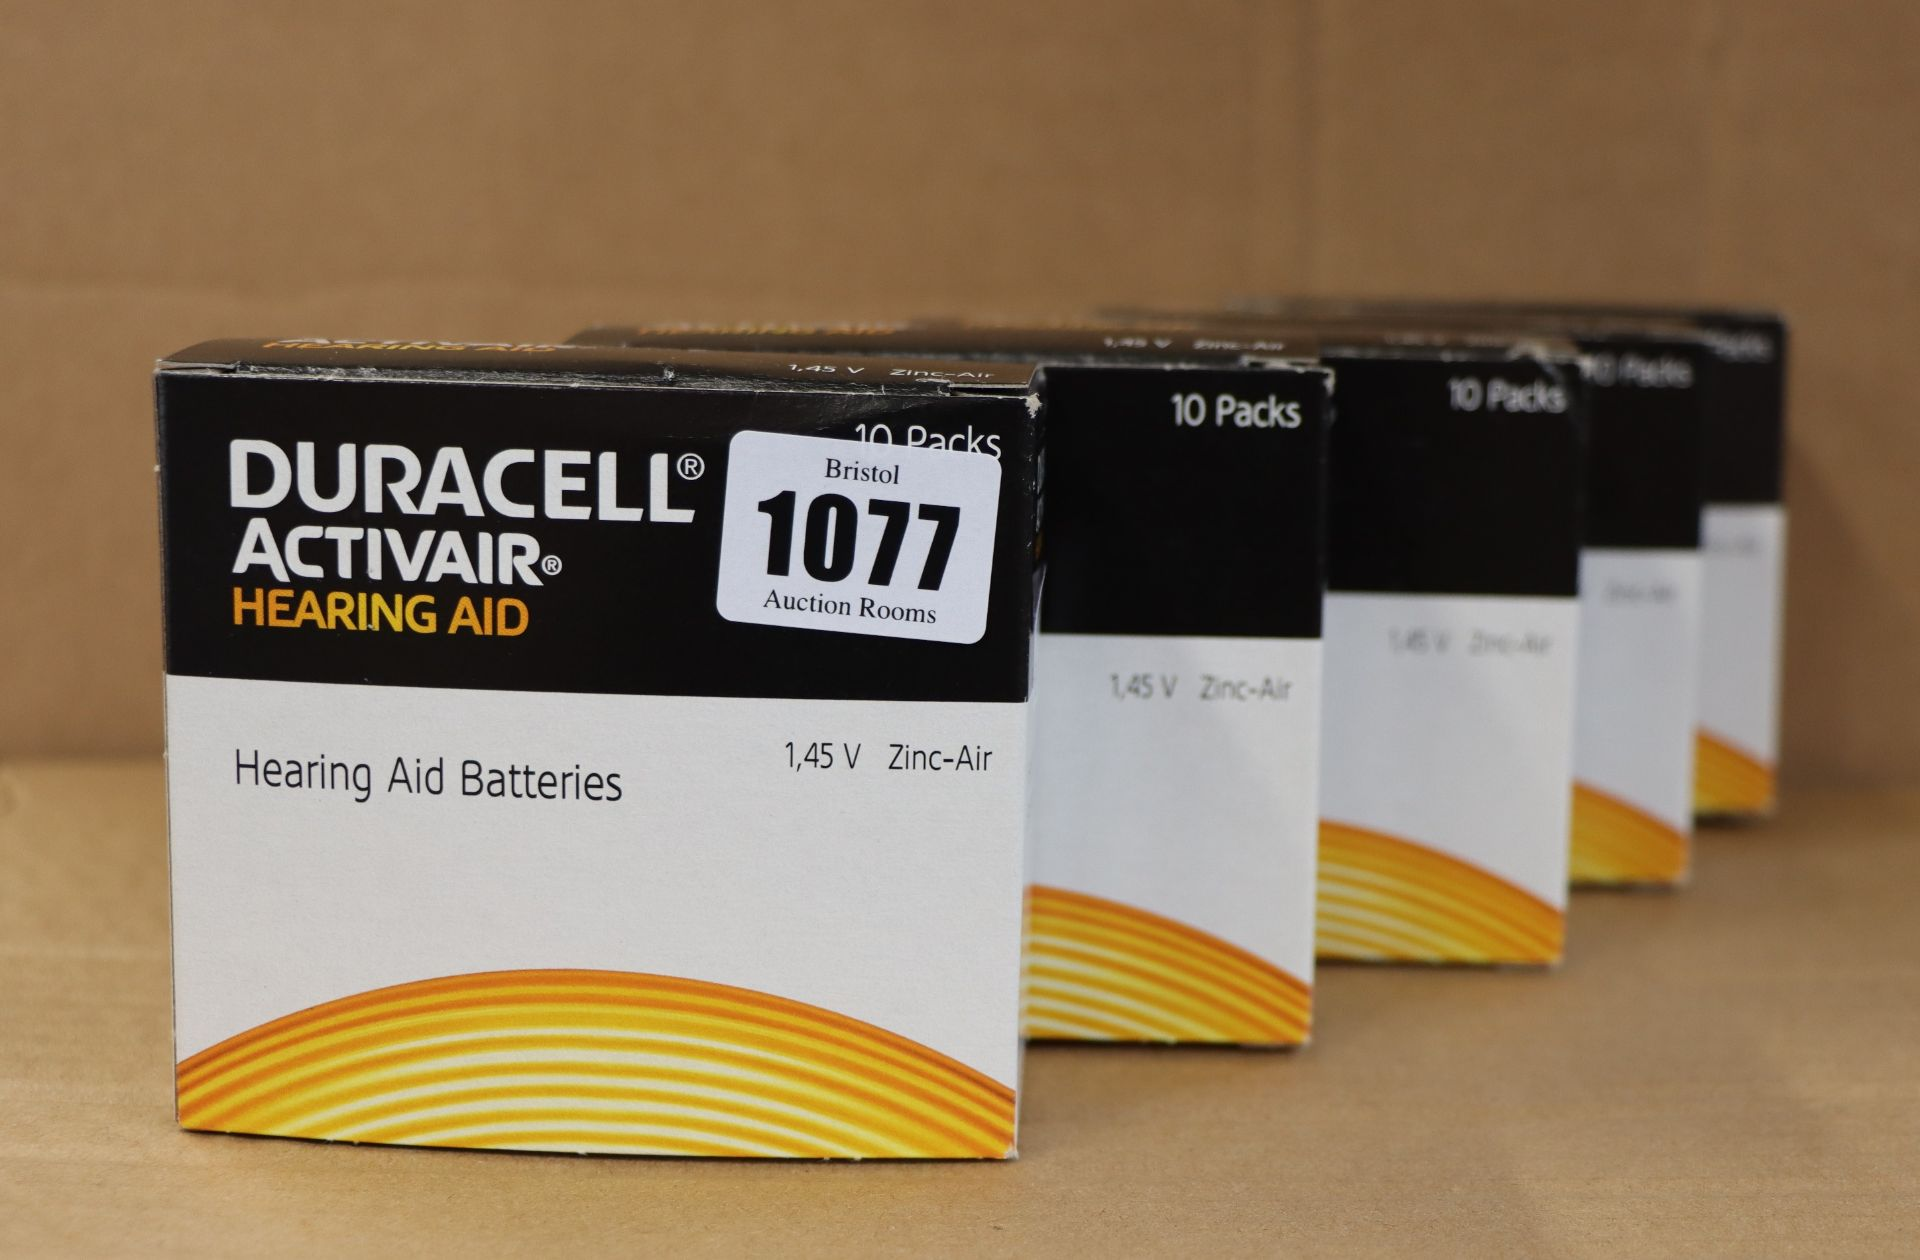 Lot 1077 - Five boxes of 60 as new Duracell Activair hearing aid batteries (Size 10).